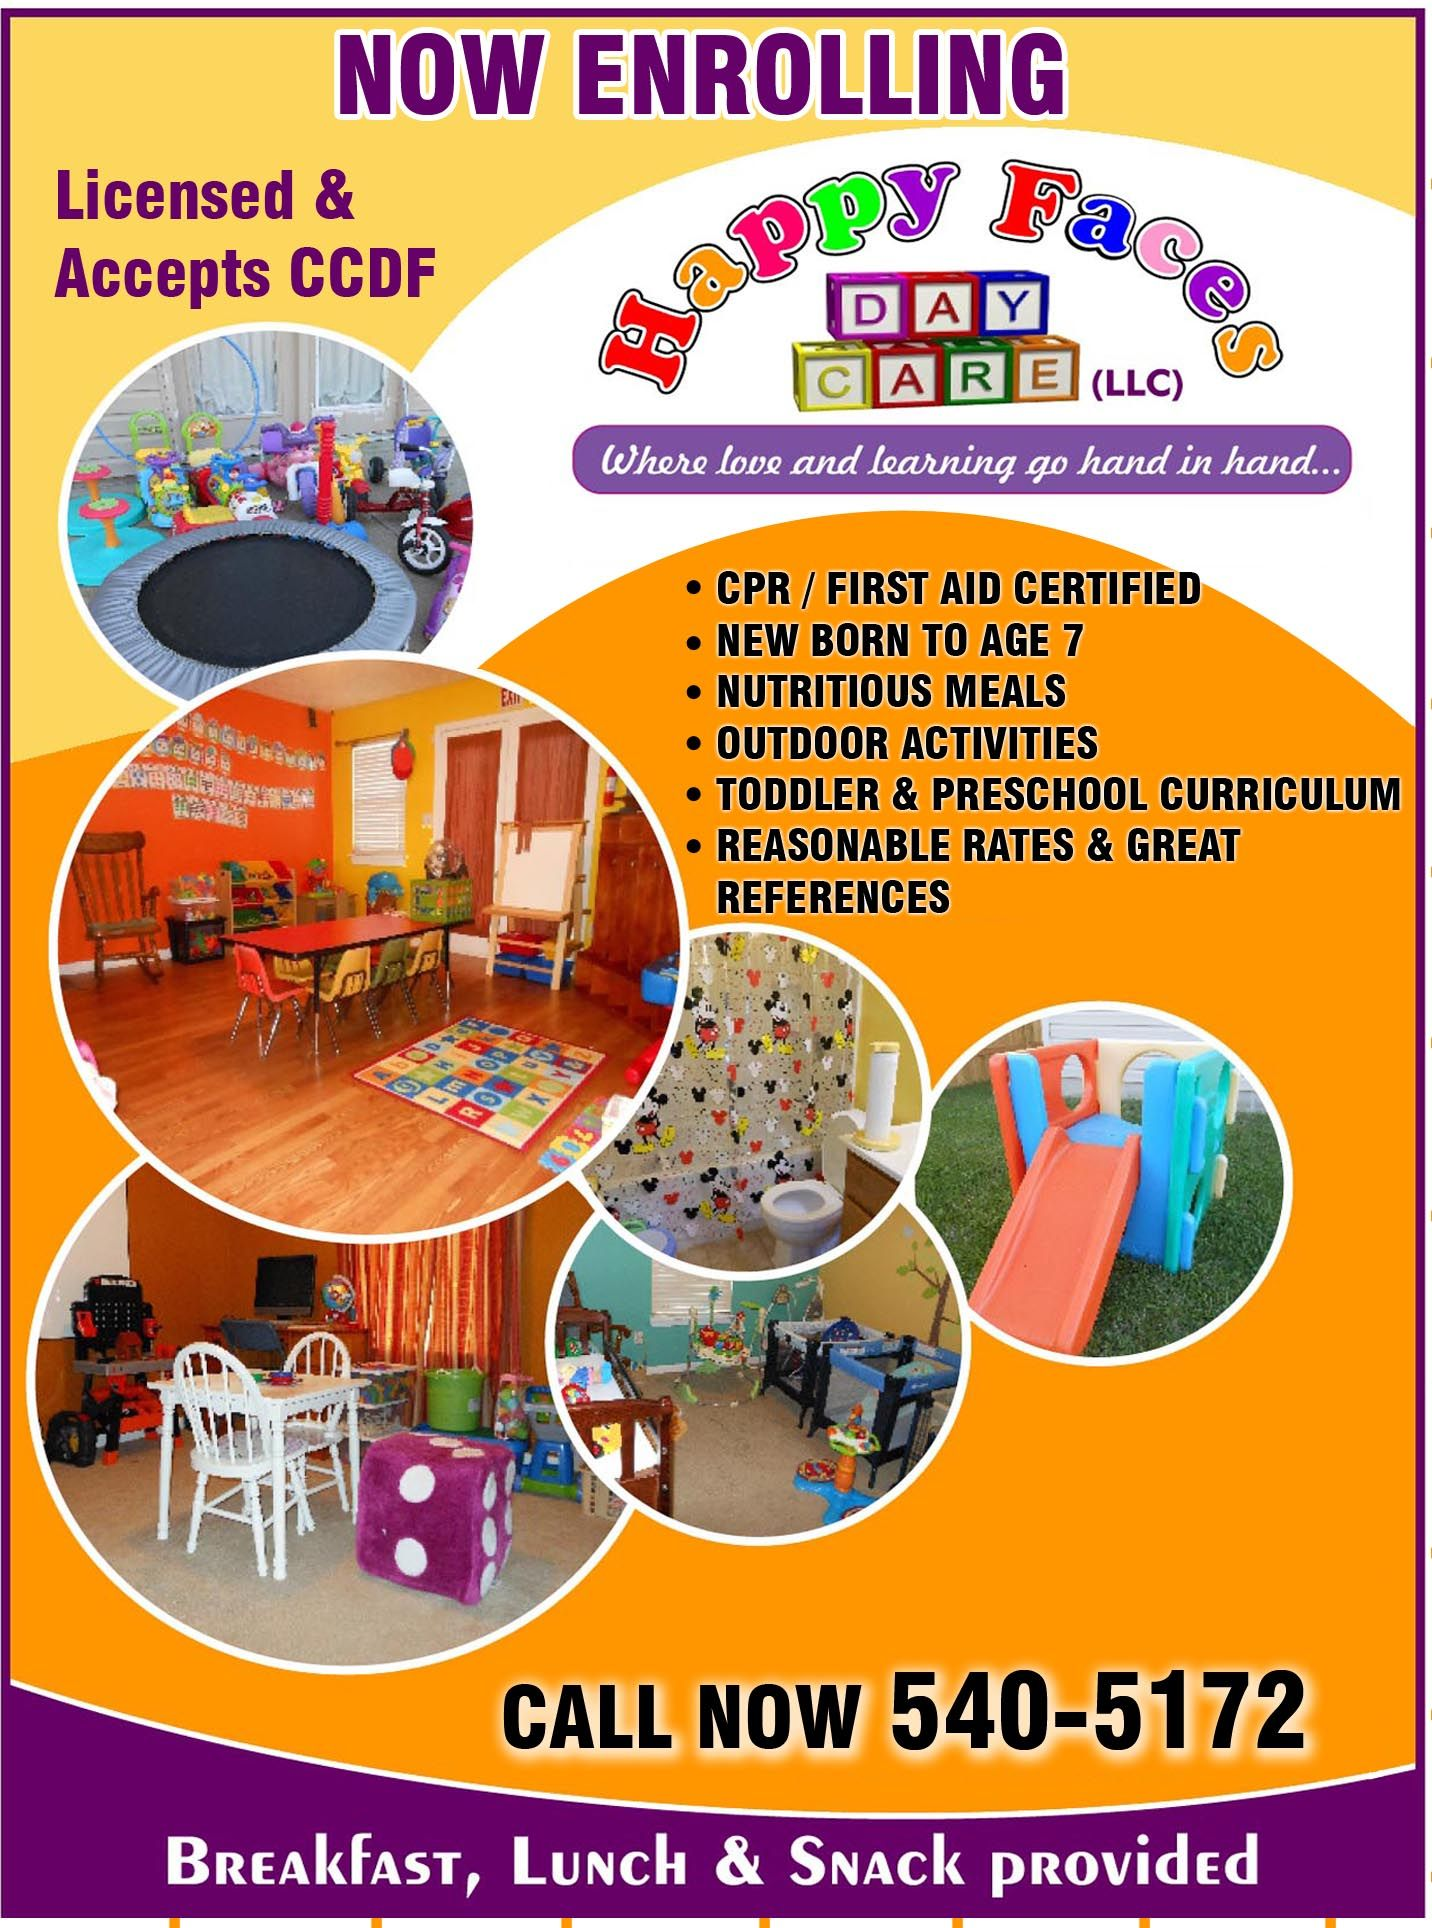 Childrens Daycare Daycare Preschool Provider Preschool: Like Space Bubbles (With Images)